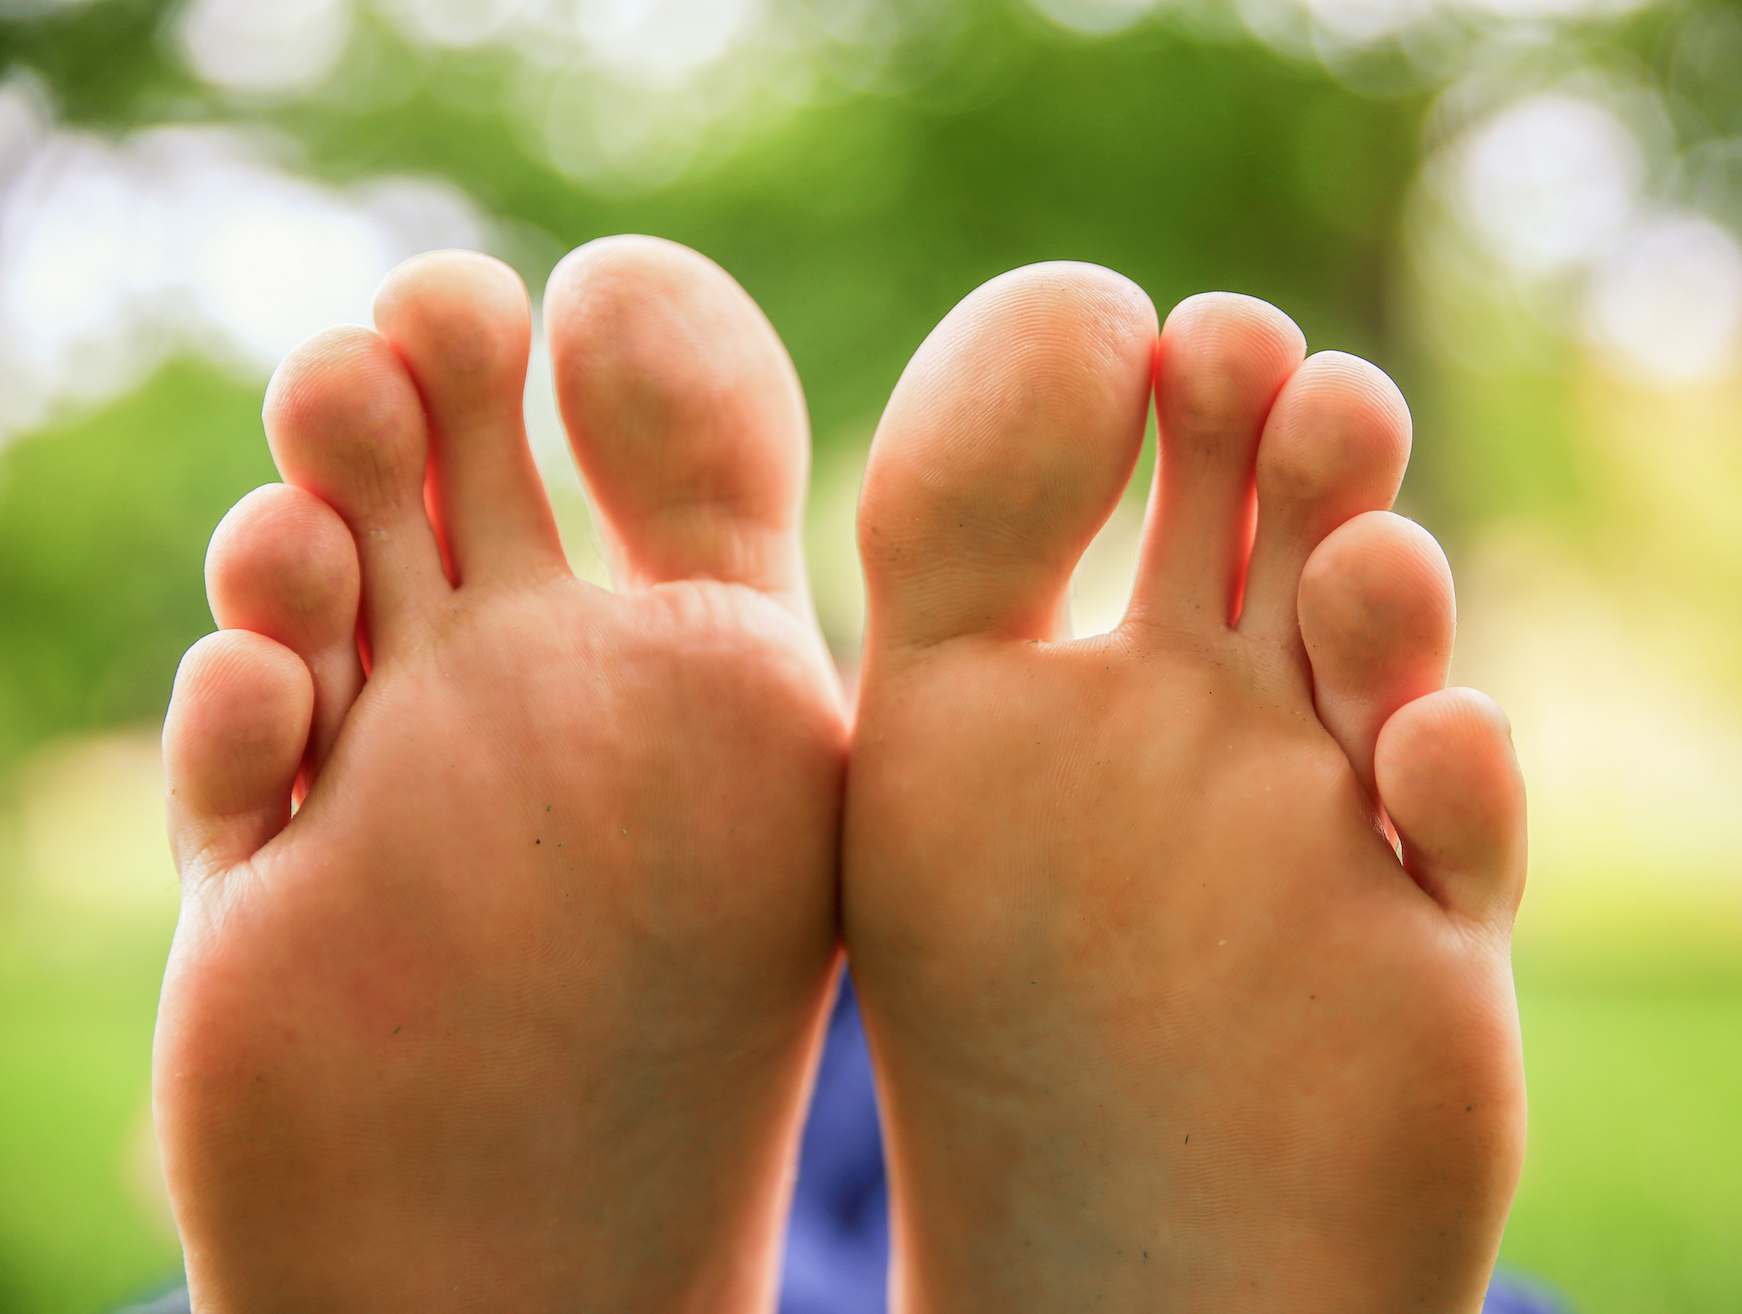 A new study from Marquette University has found that the big toe was likely the last part of the human foot to evolve.